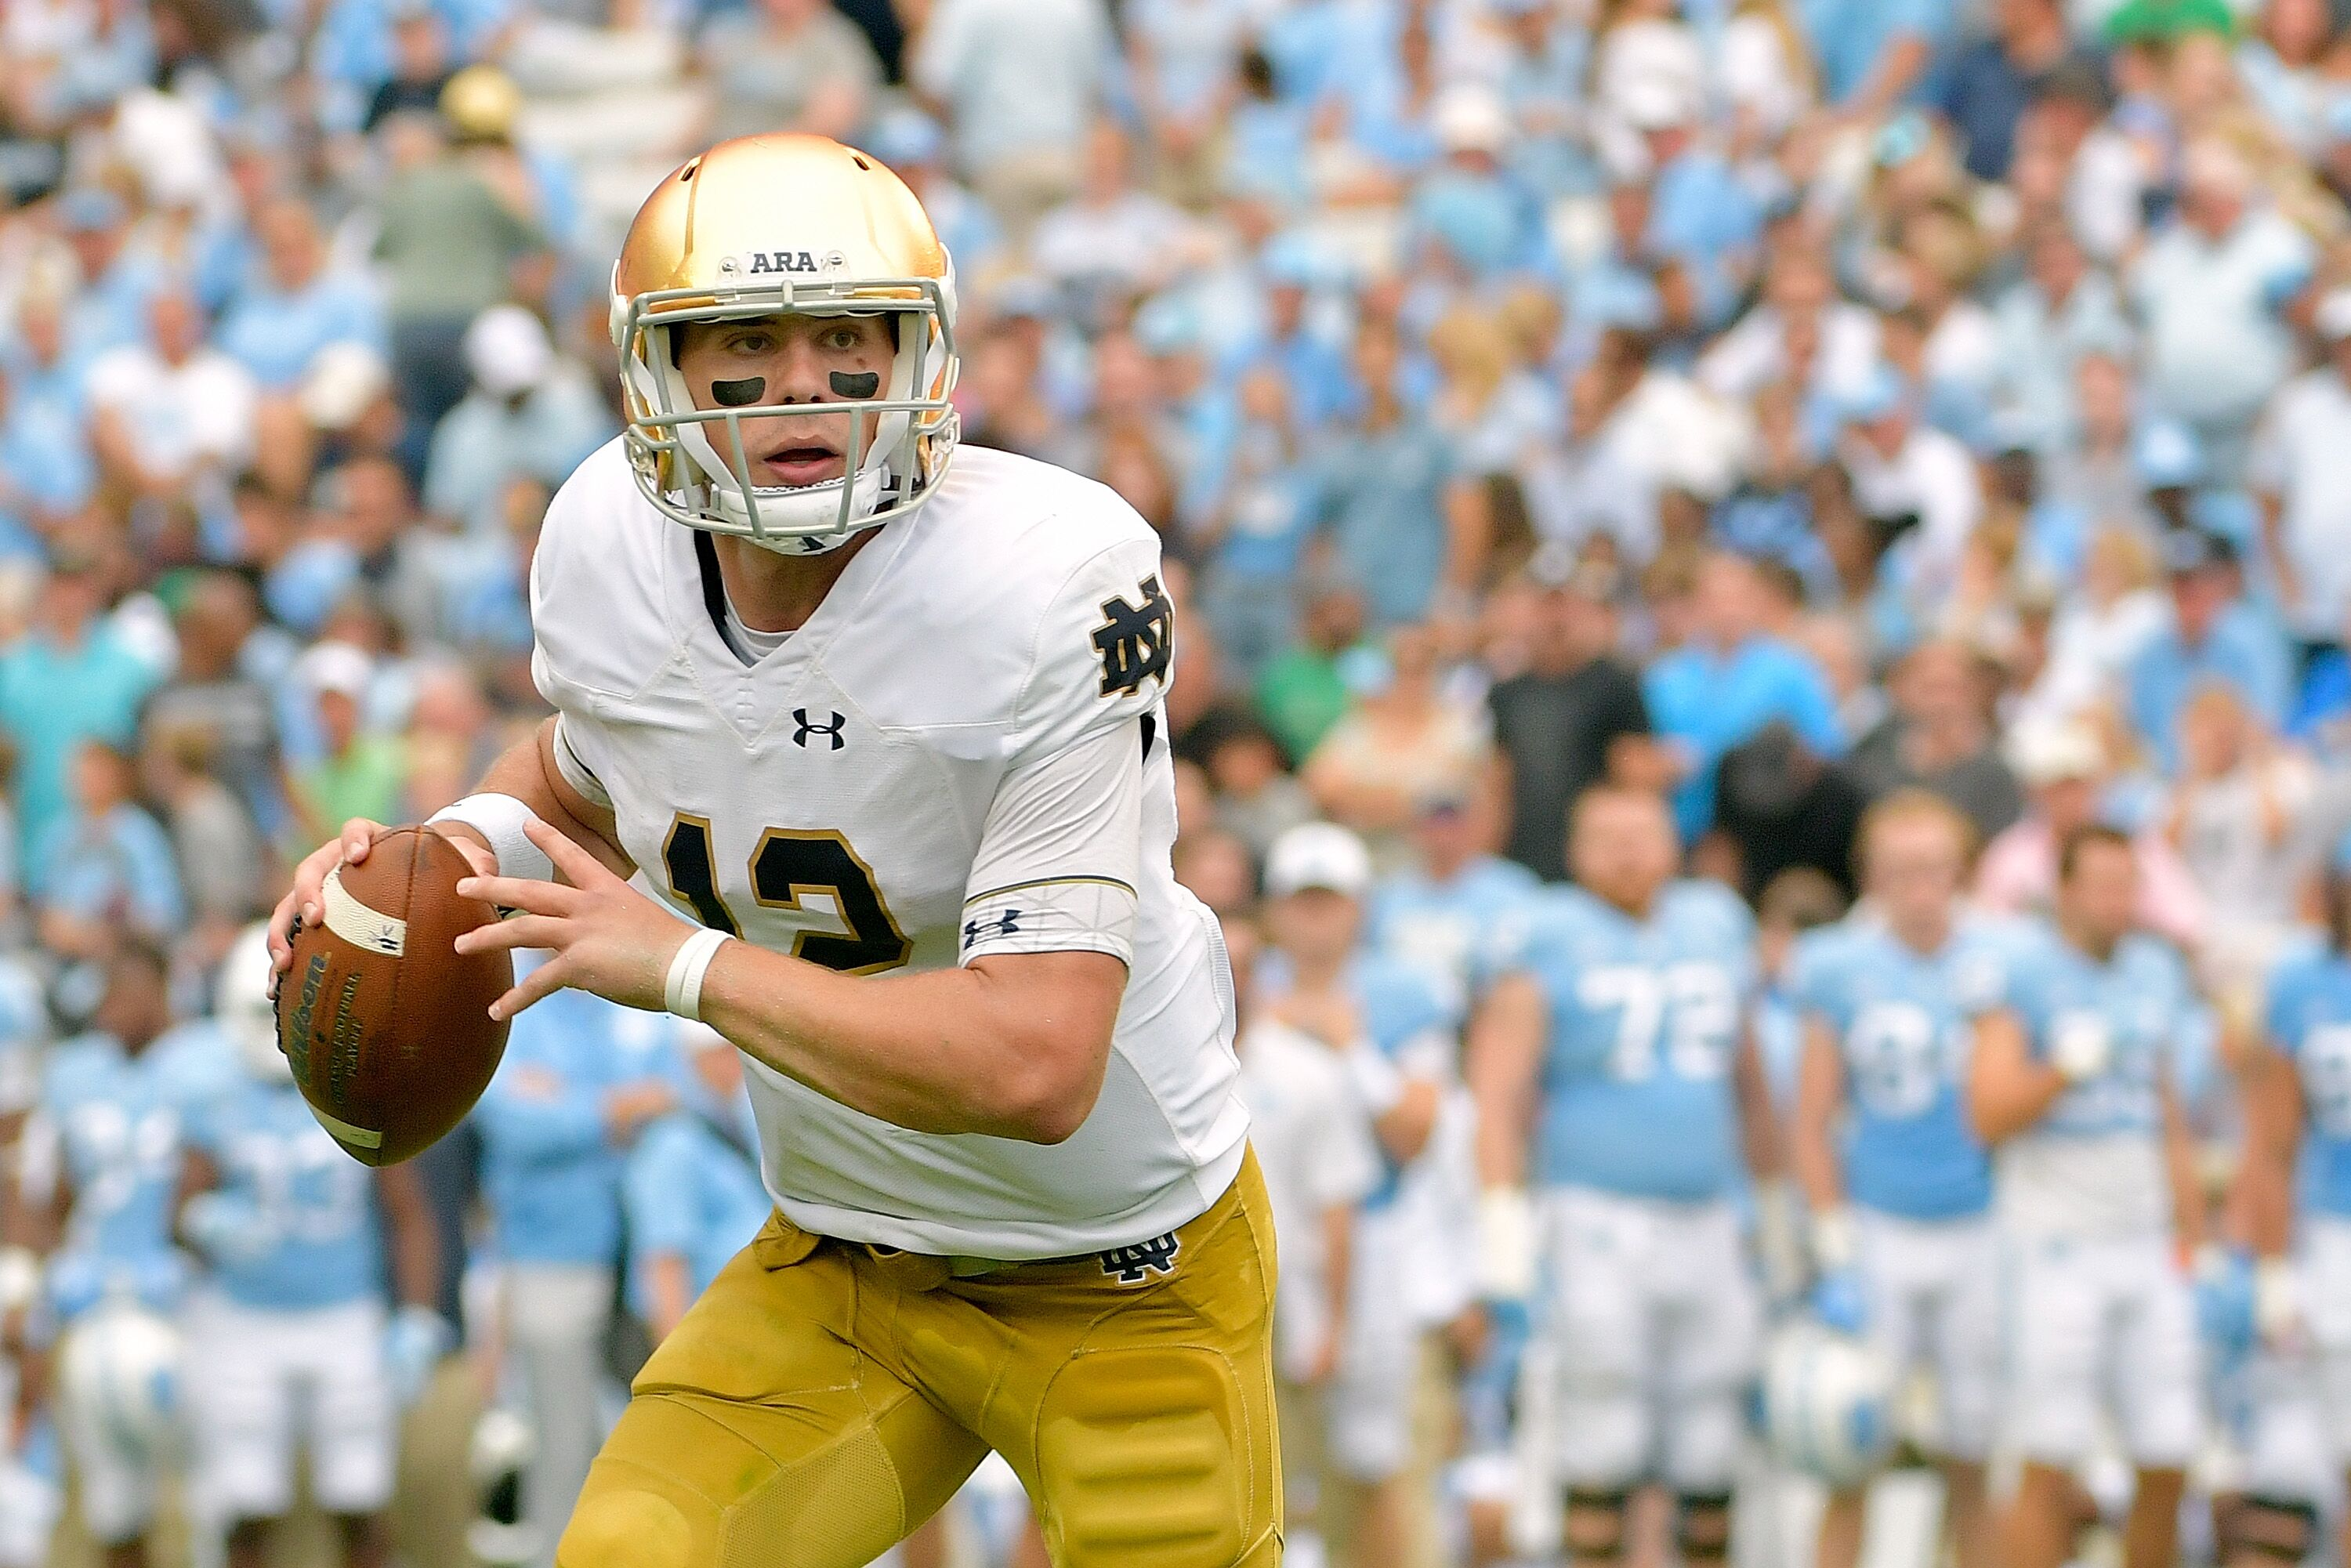 Notre Dame football: Will Ian Book get into bowl game?